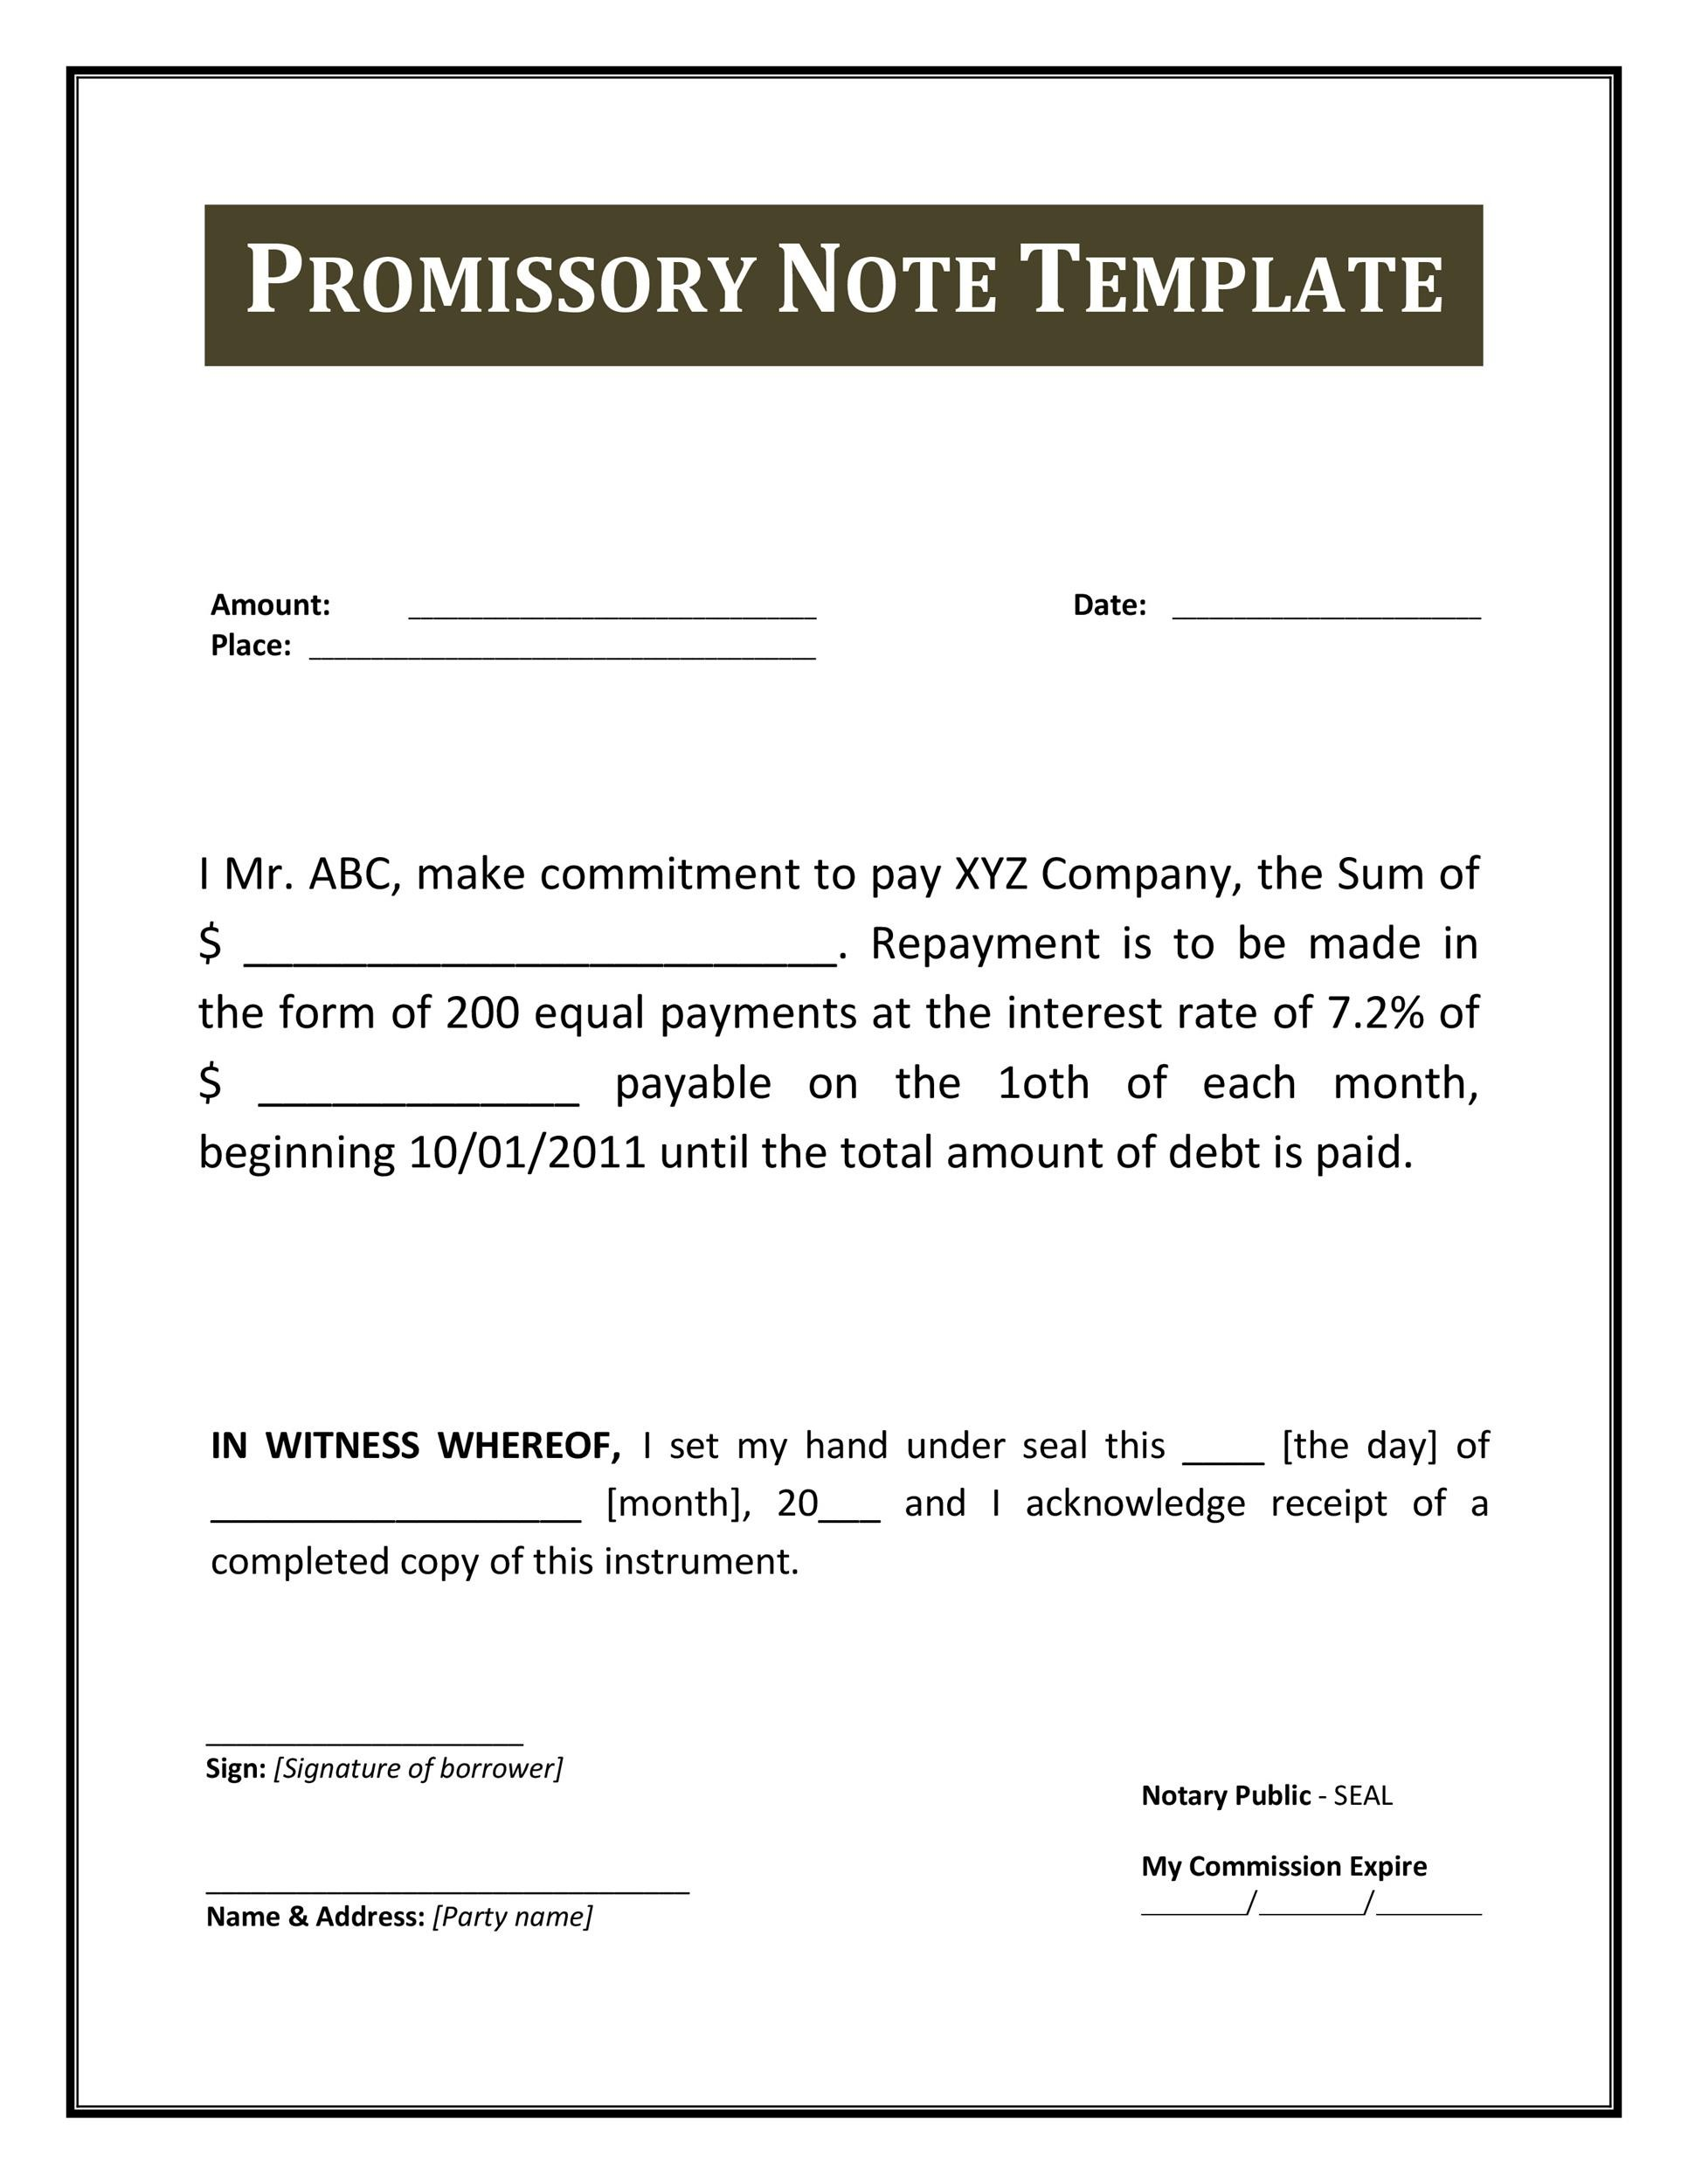 Free promissory note template 33